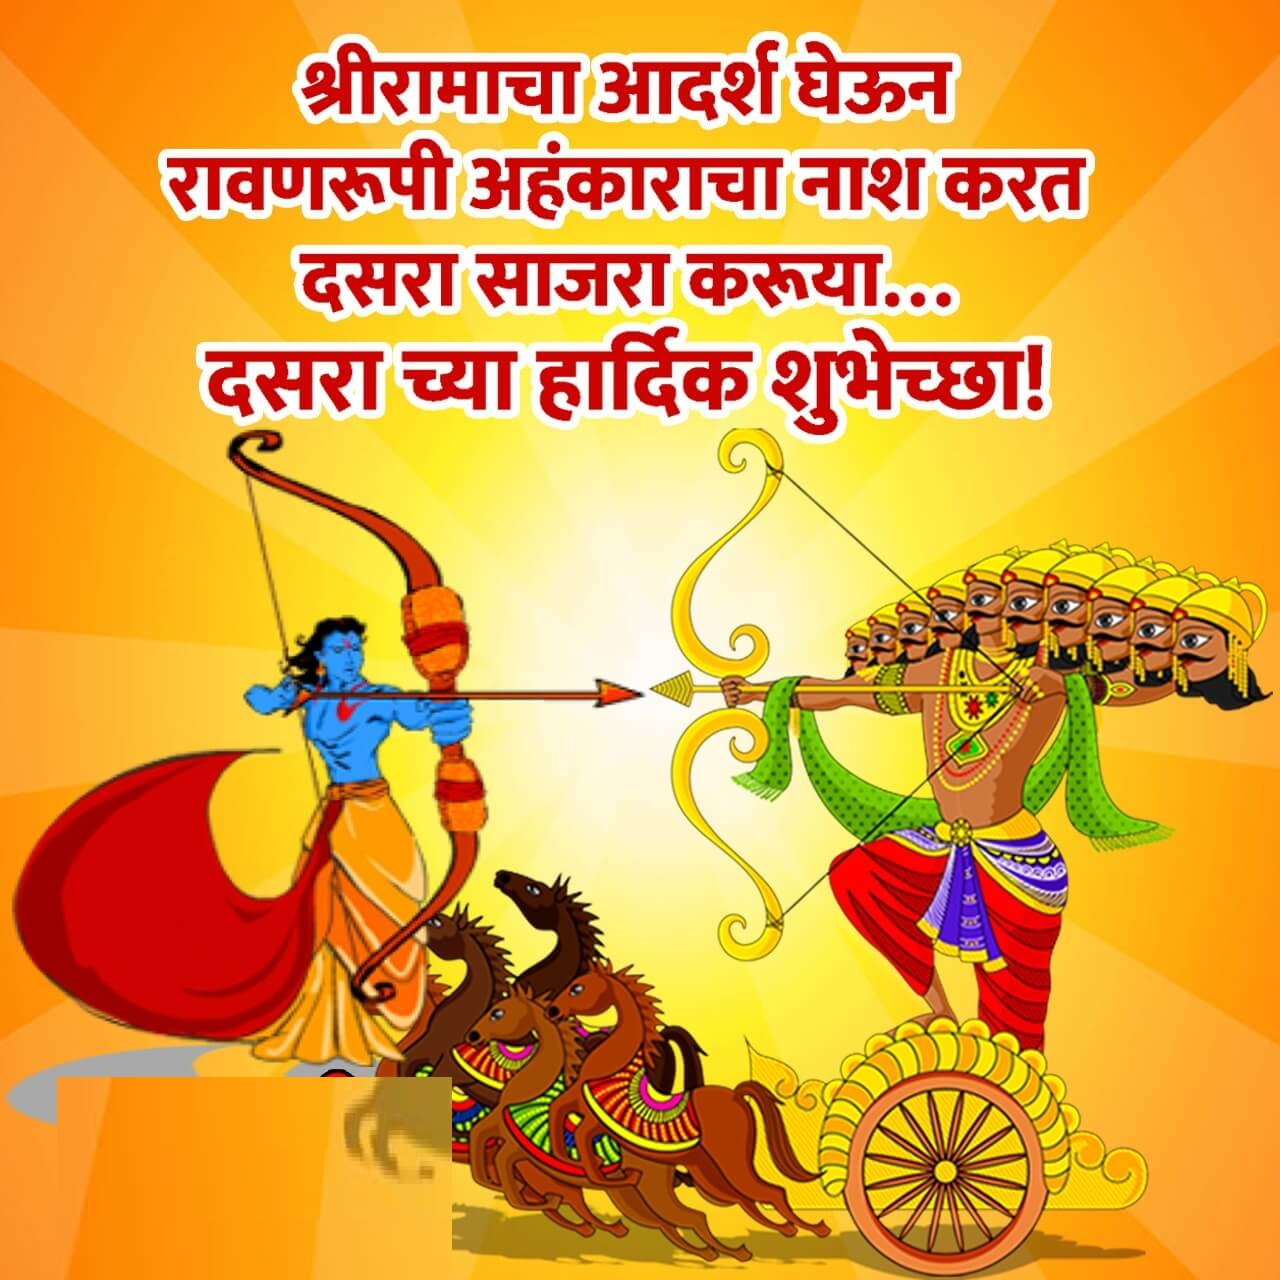 Happy Dussehra 2020 Quotes, SMS, Messages, Wishes Images in Marathi